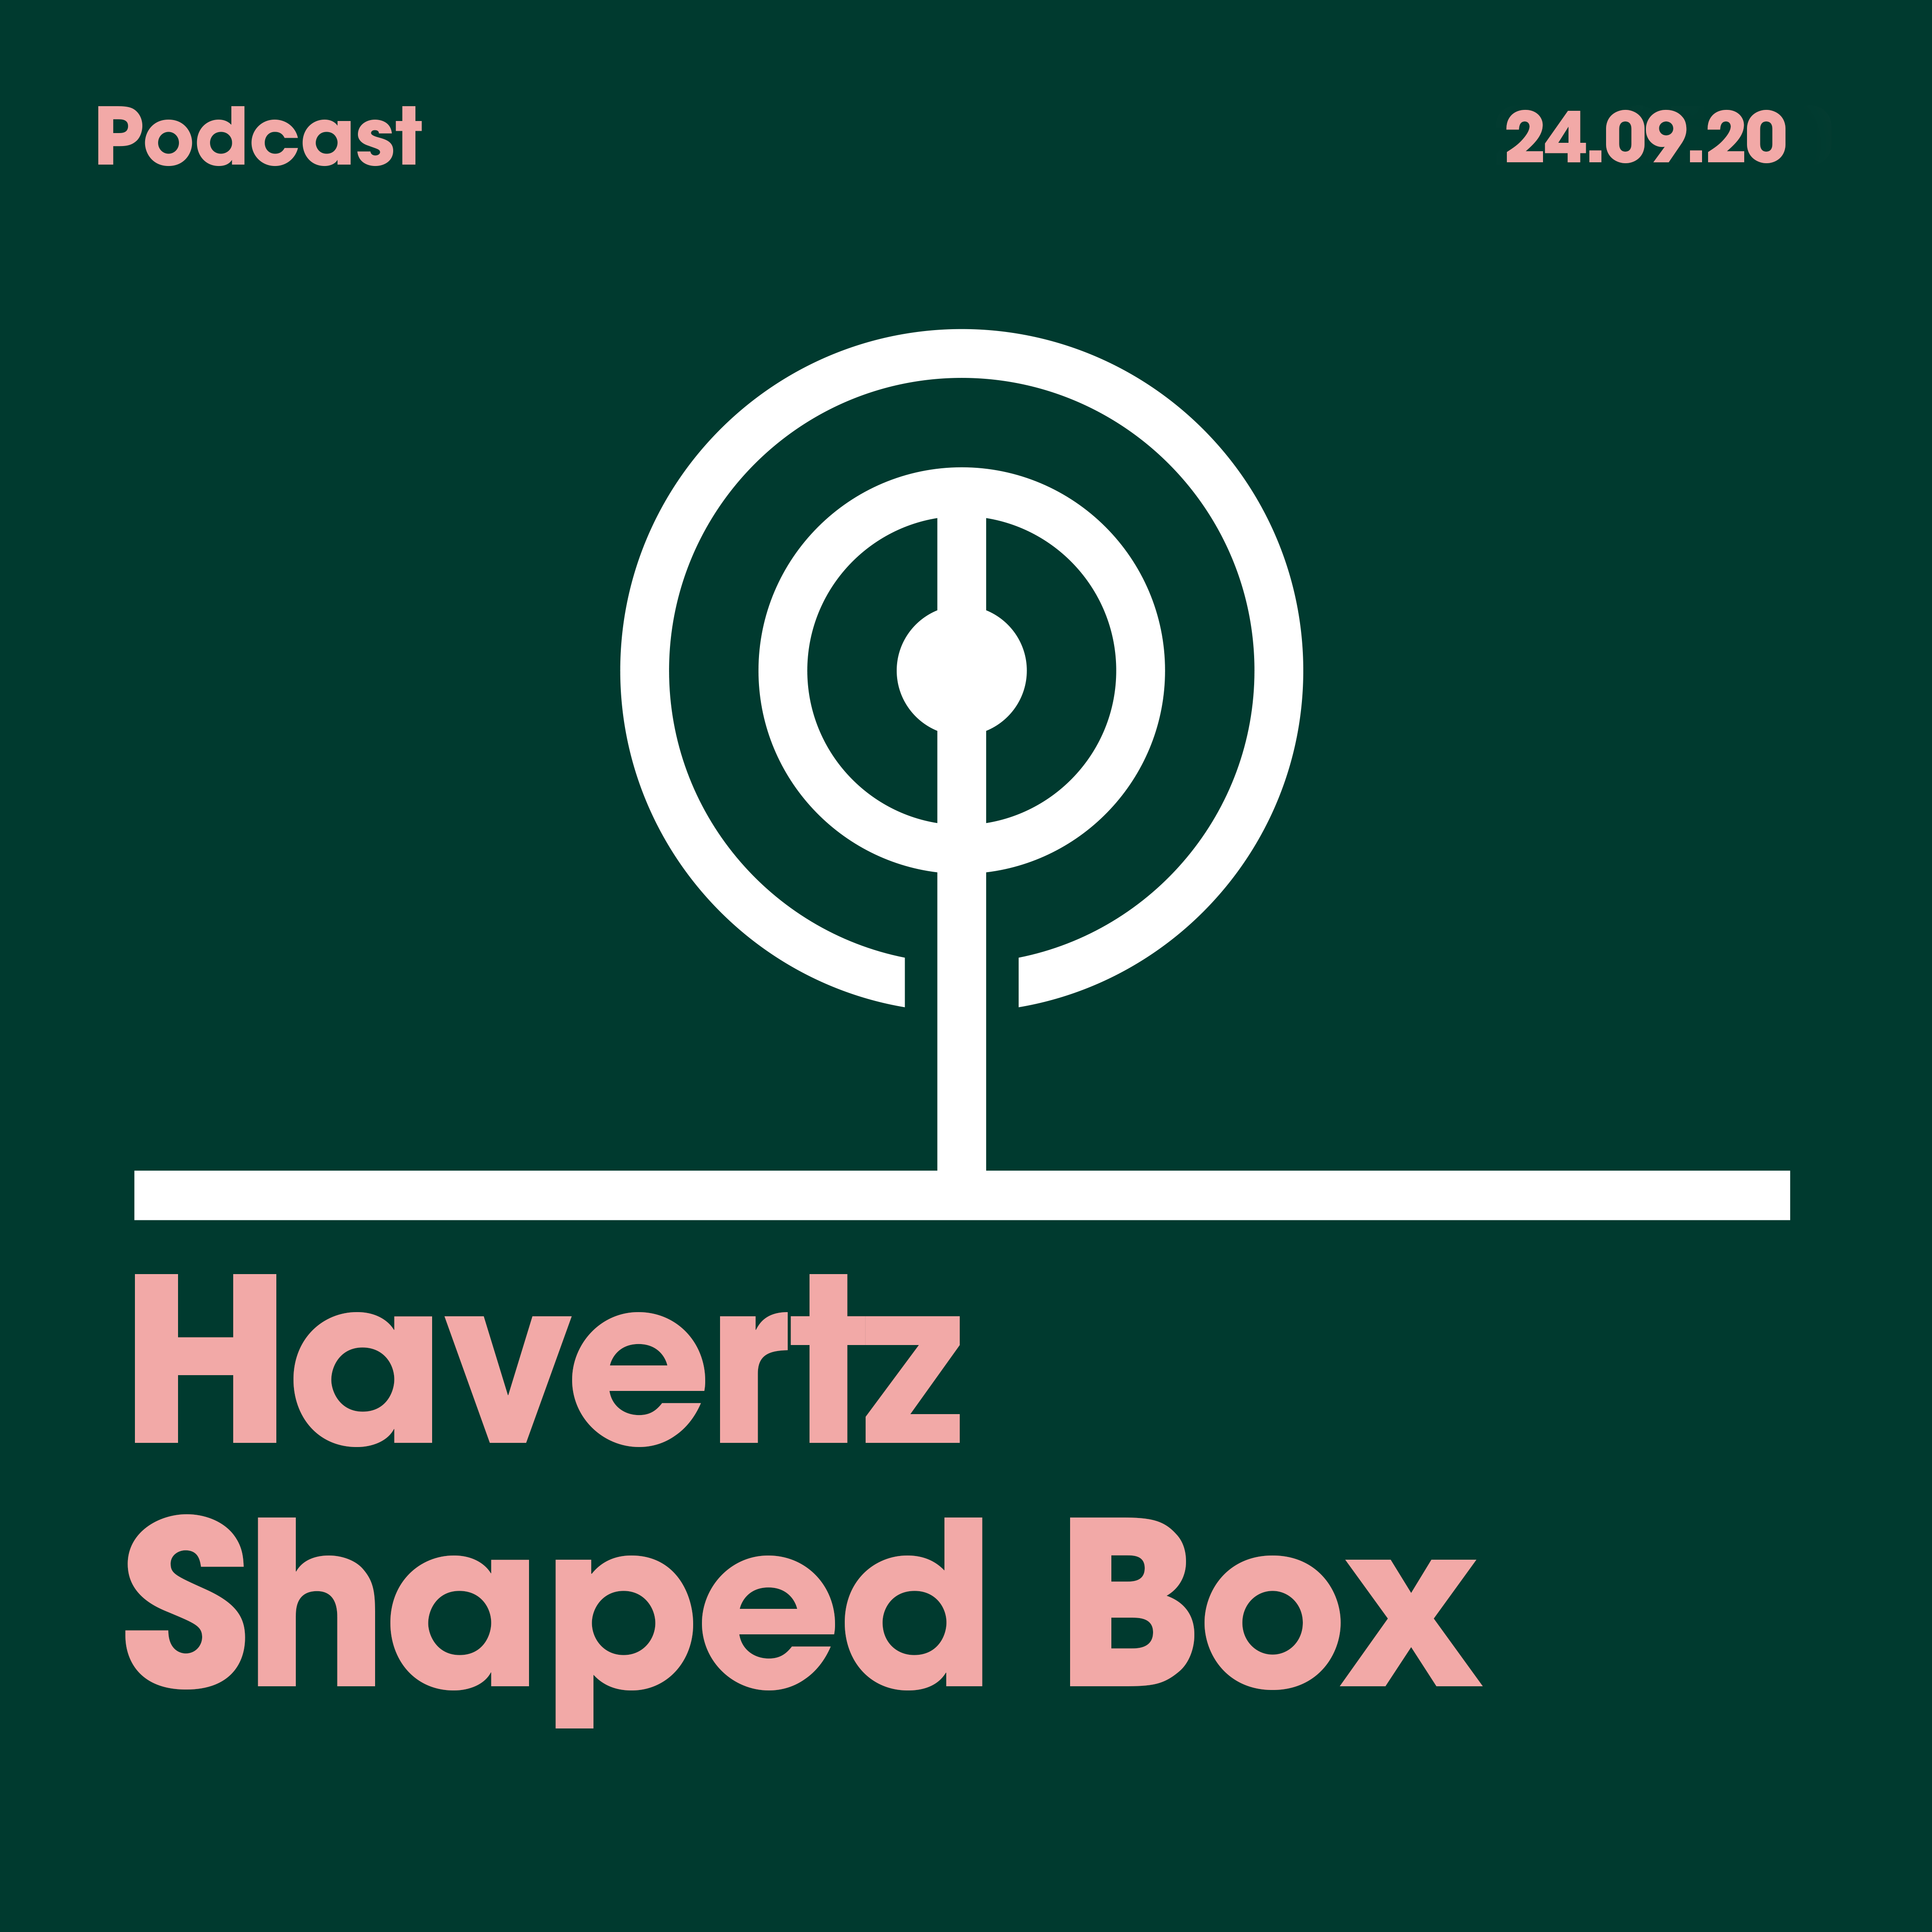 24.09.20. Havertz Shaped Box